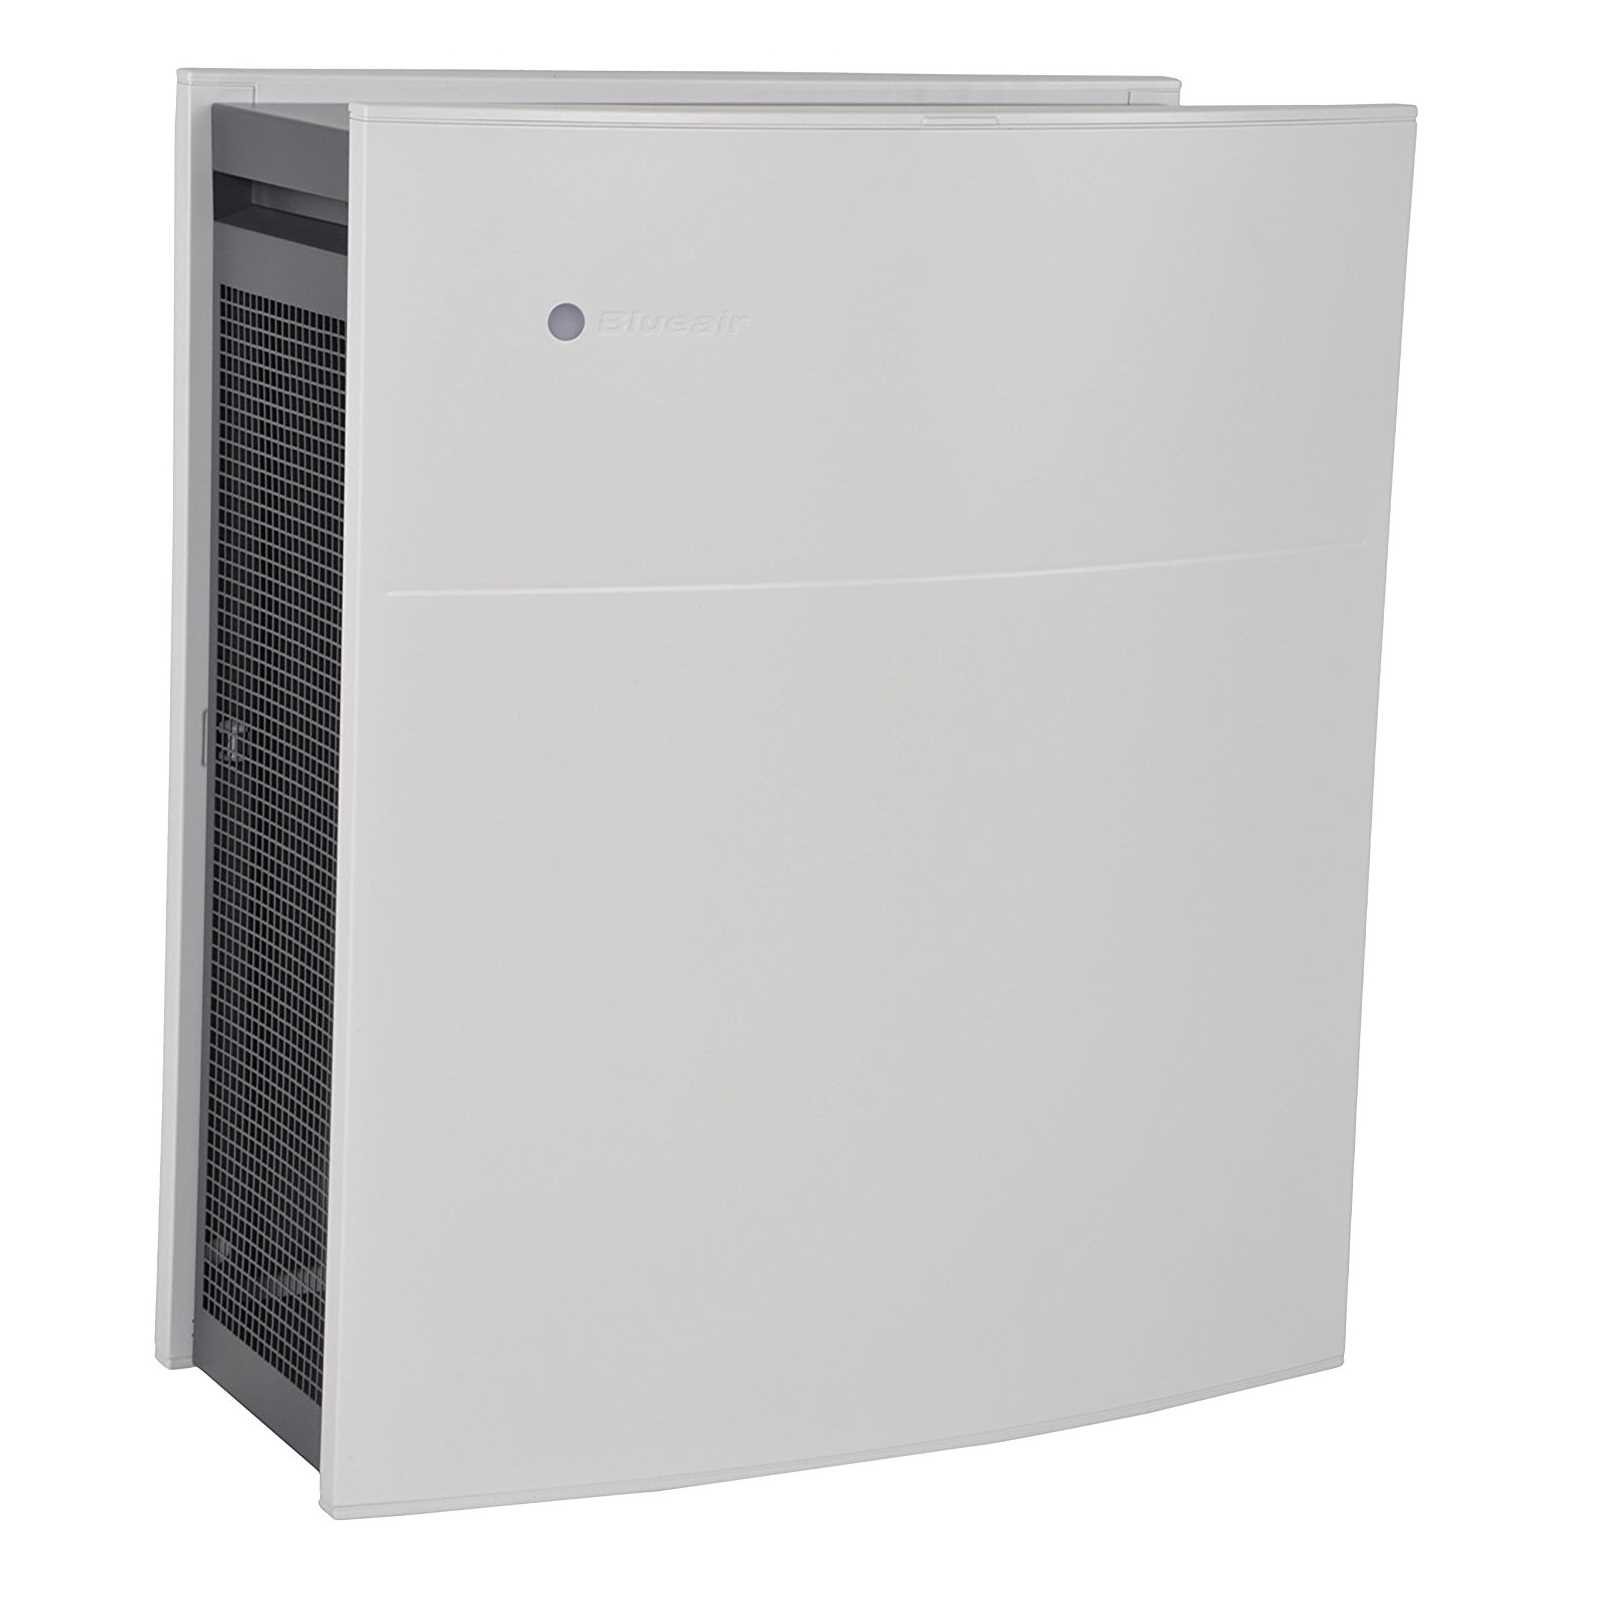 Blueair 480i Air Purifier